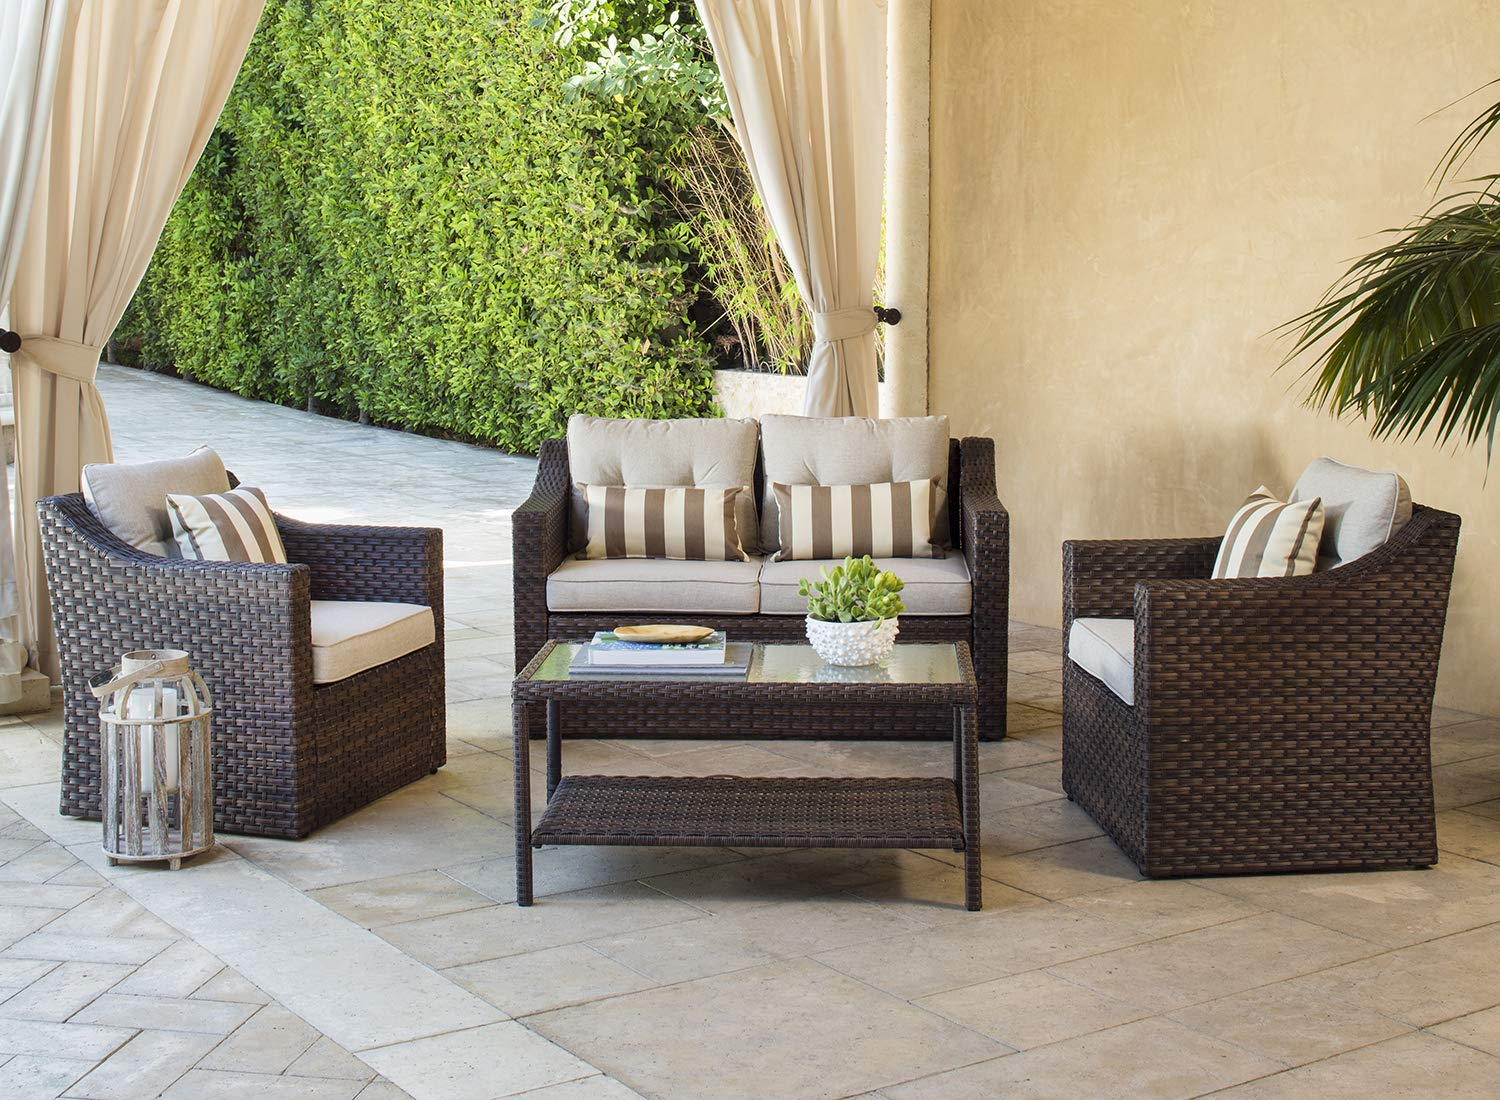 SOLAURA Outdoor Fully Woven 4-Piece Conversation Furniture Set All Weather Brown Wicker Beige Cushions & Sophisticated Glass Coffee Table - 【Timeless & Sophisticated Design】 This hand-woven rich brown wicker outdoor set with classic gold stripe throw pillows fits a variety of living space styles and settings. This is the perfect outdoor sofa if you have an outdoor space, you can still enjoy a cup of coffee under the sun, or have a few drinks with friends! 【Ergonomically Designed for Comfort】 This outdoor sofa set comes with sponge padded seat cushions and back cushions. Designed with comfort in mind, it has extra wide seat width and depth perfect for lounging. Generous wide arm rests to rest your hands on or place a drink! 【All-Weather Synthetic Wicker】 Engineered all-weather synthetic brown wicker to mimic the variegated look and feel of natural wicker. Carefully designed complex weave patterns for added strength and durability. The rich color provides a premium outdoor look. - patio-furniture, patio, conversation-sets - 81sILzXj6CL -